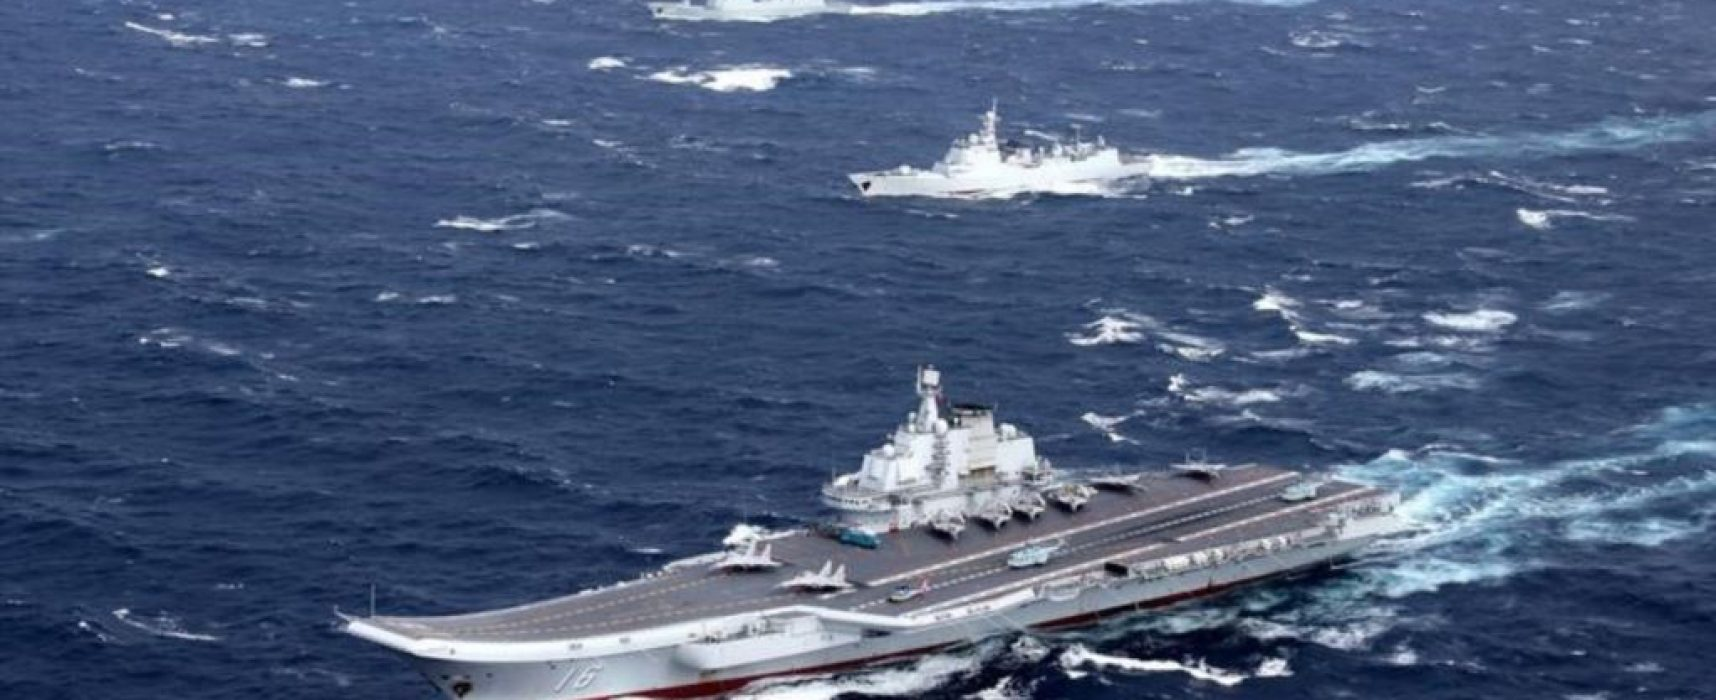 Repeated Aggression in South China Sea Belies China's Denials of 'Maritime Empire'